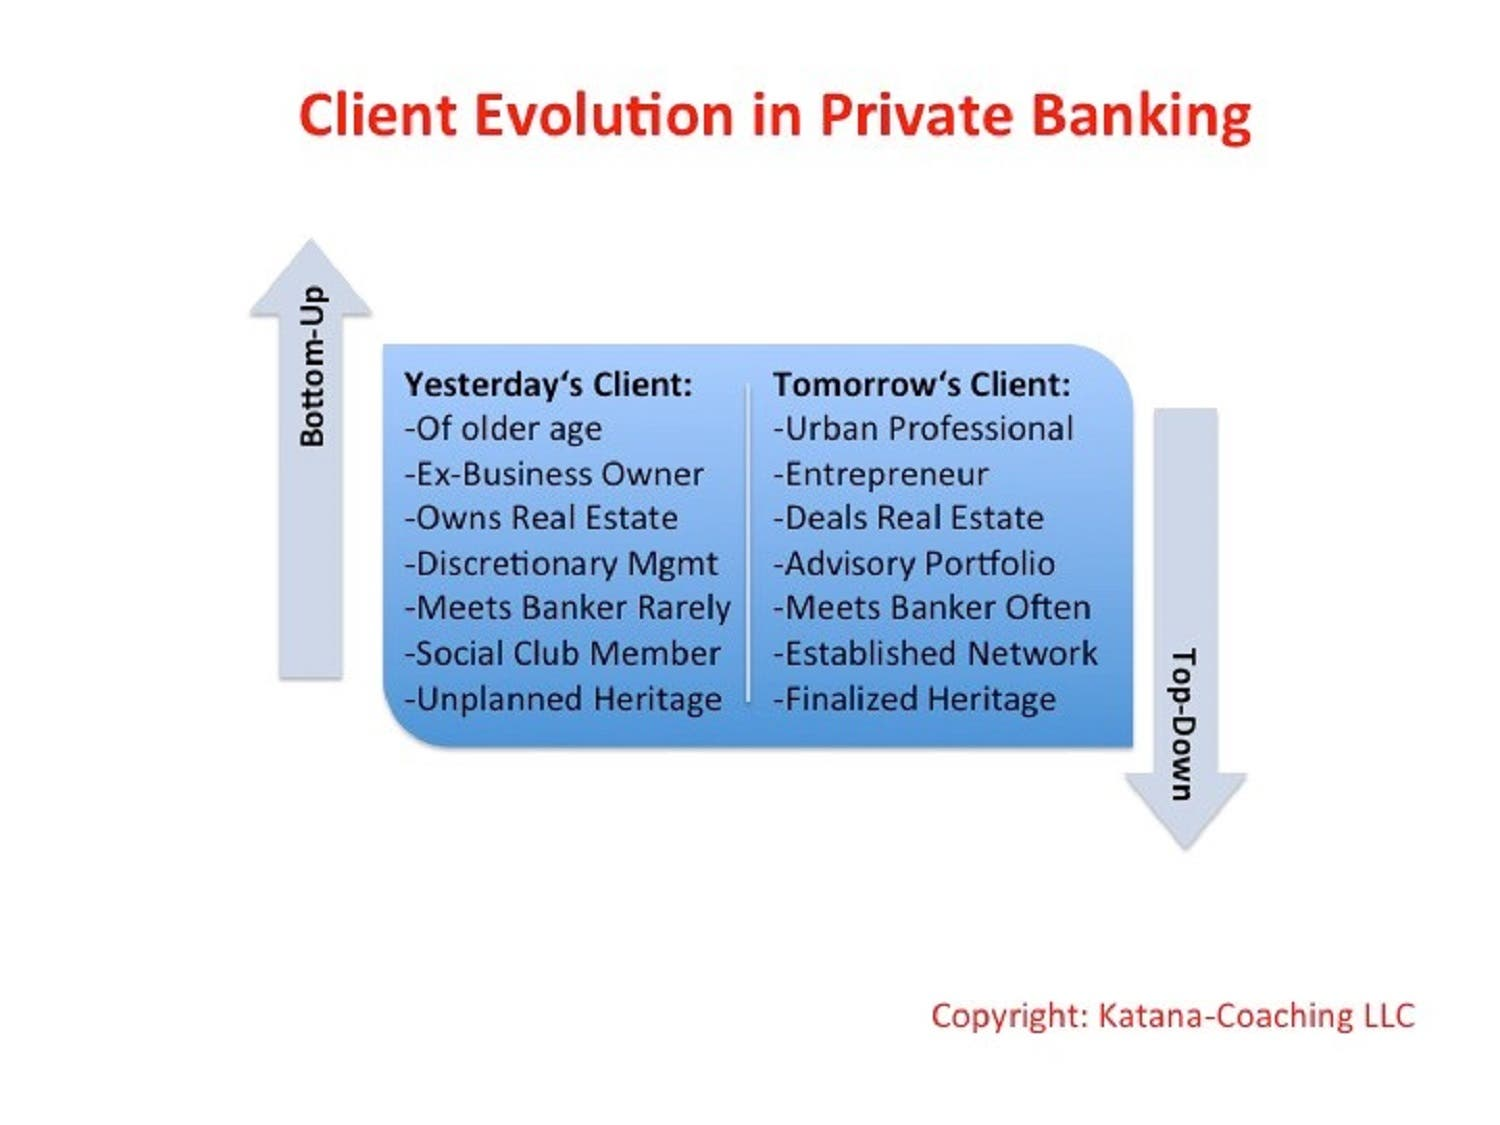 Client evolution in Private Banking. (Courtesy: Katana-Coaching)